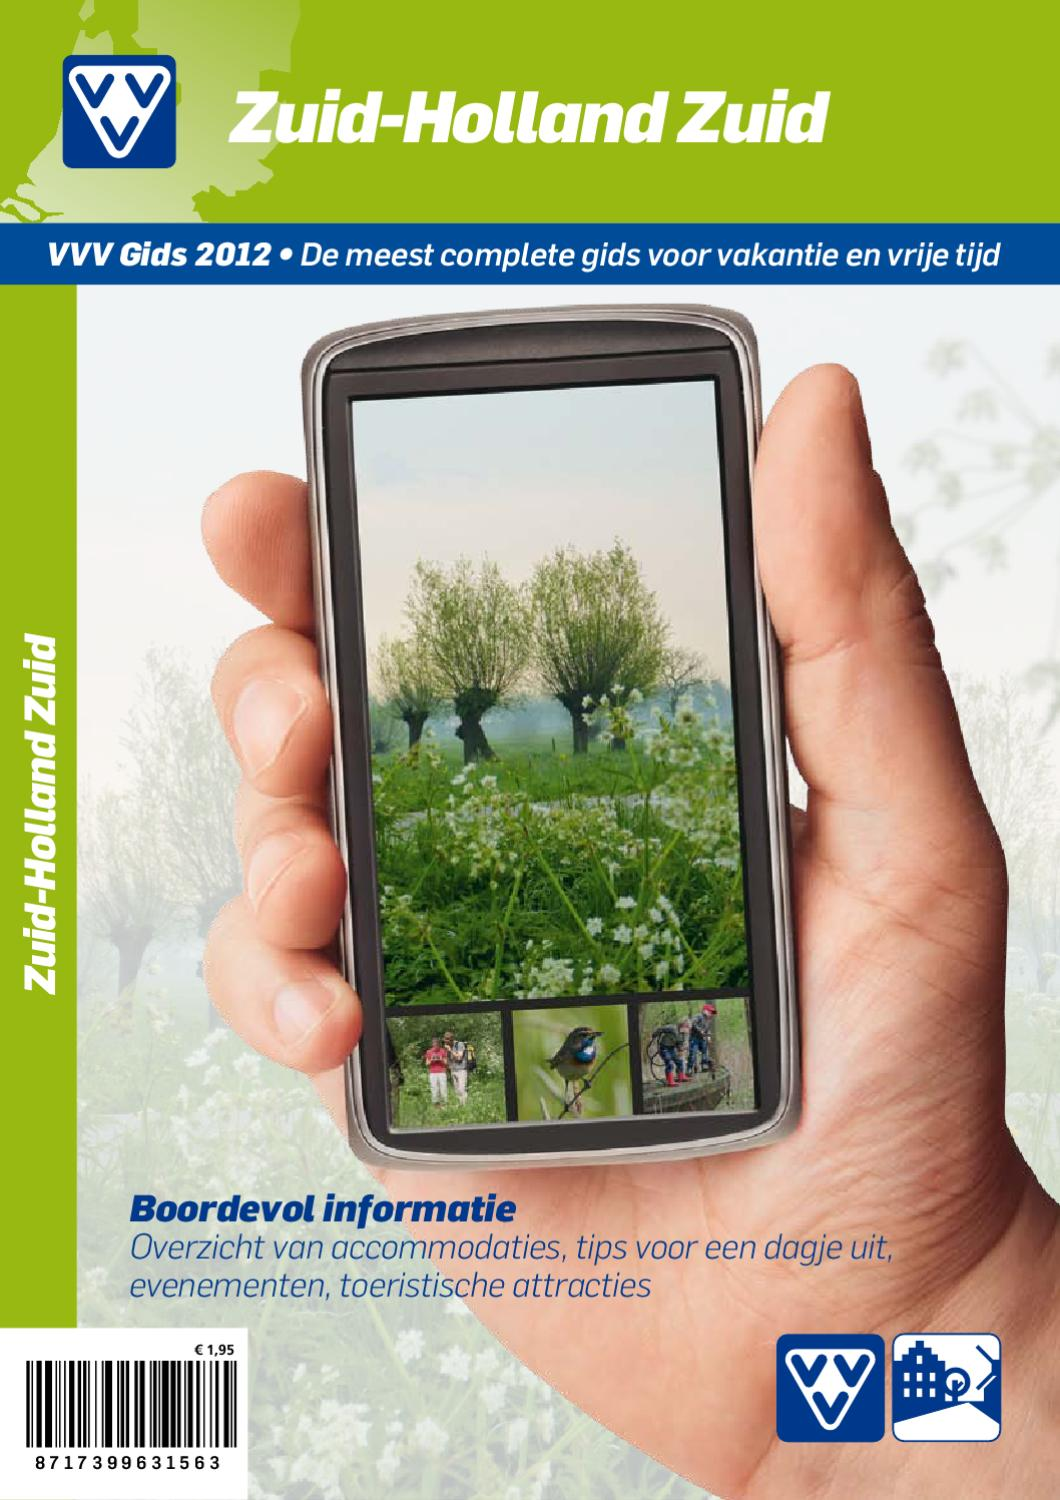 Vvv gids zuid holland zuid by vvv zuid holland zuid   issuu